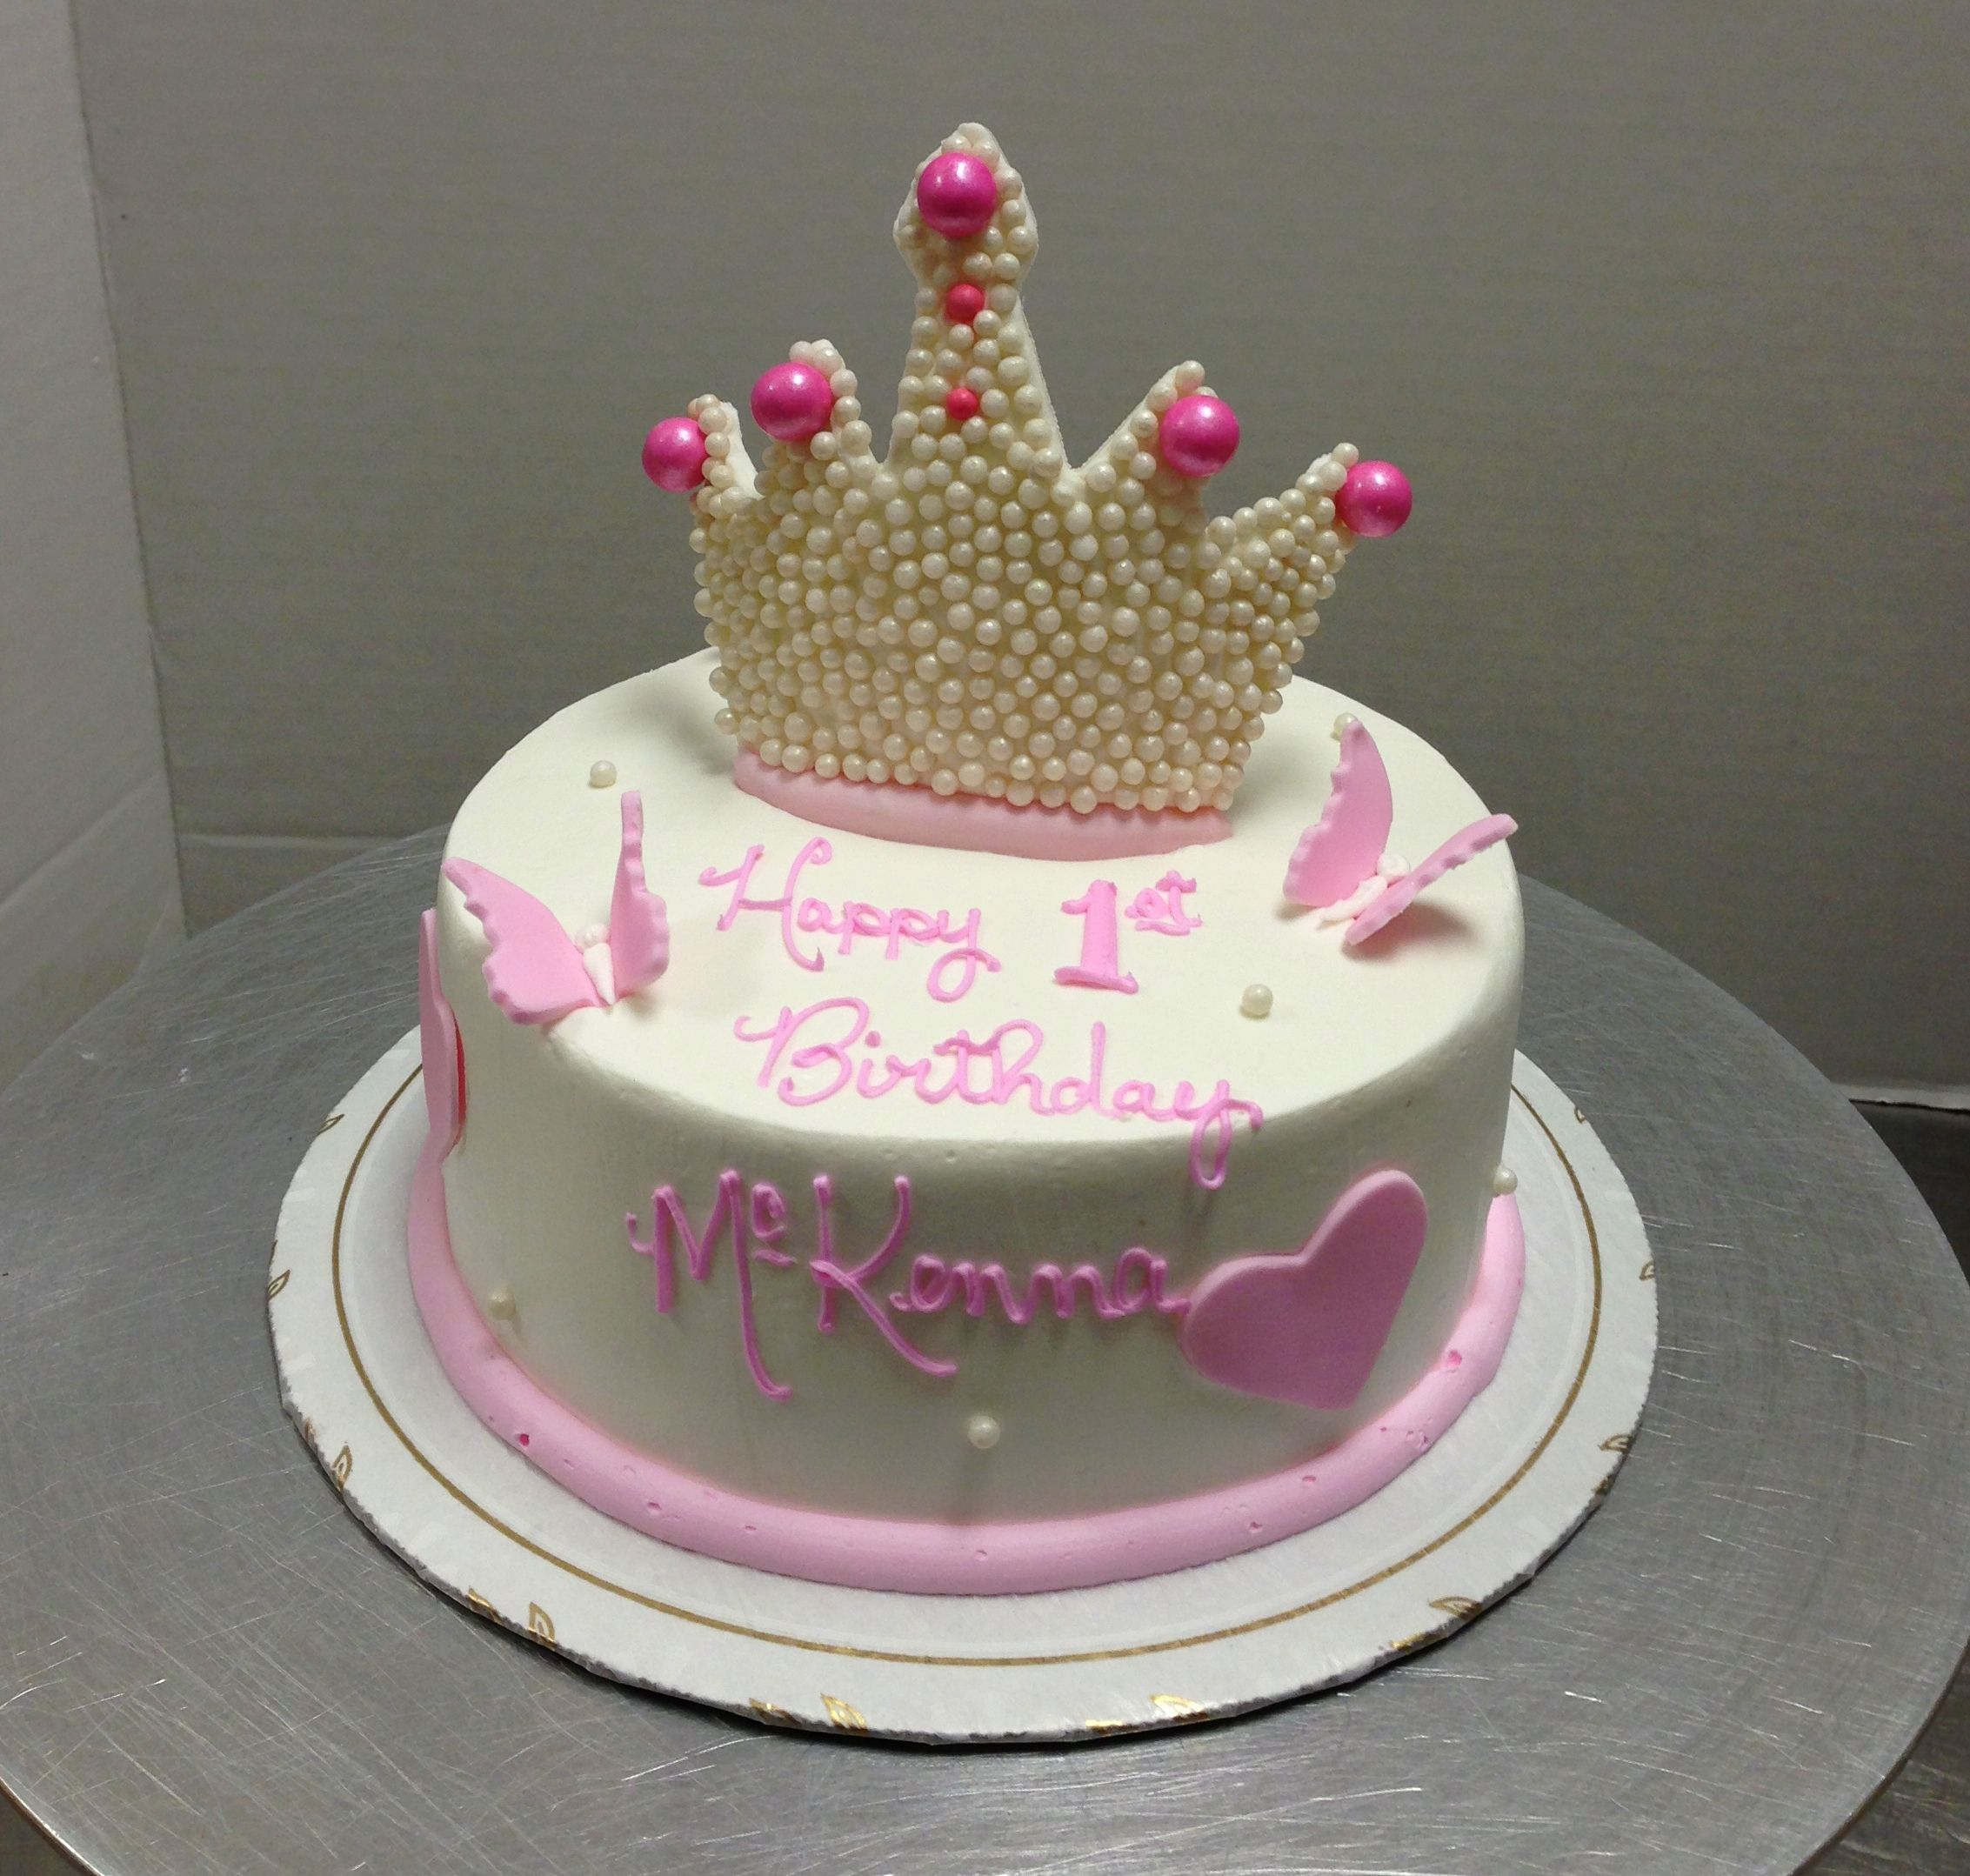 Cake Designs With Crown : Pretty Princess Crown Birthday Cake #crown #butterfly # ...